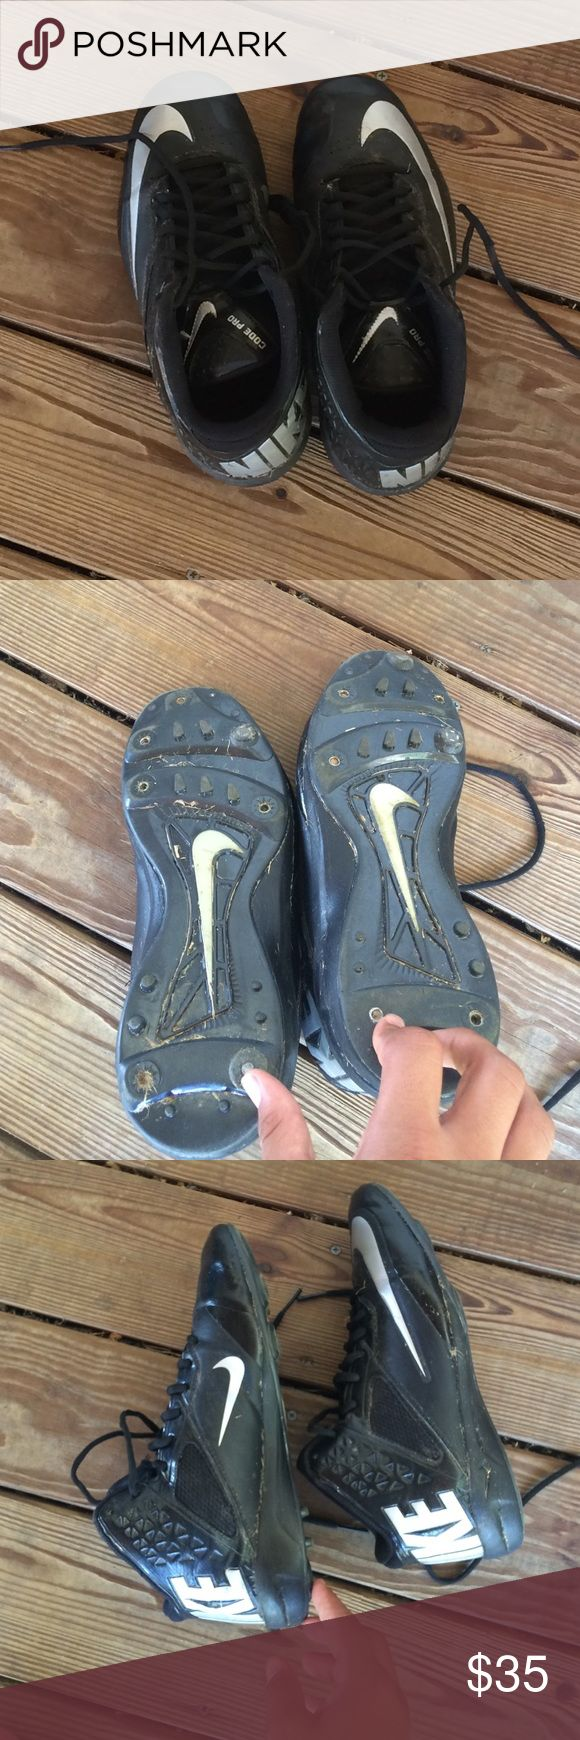 Men's size 10 football cleats Men's size 10 football cleats ( great condition) worn about 40 times ( 1 football season ) Shoes